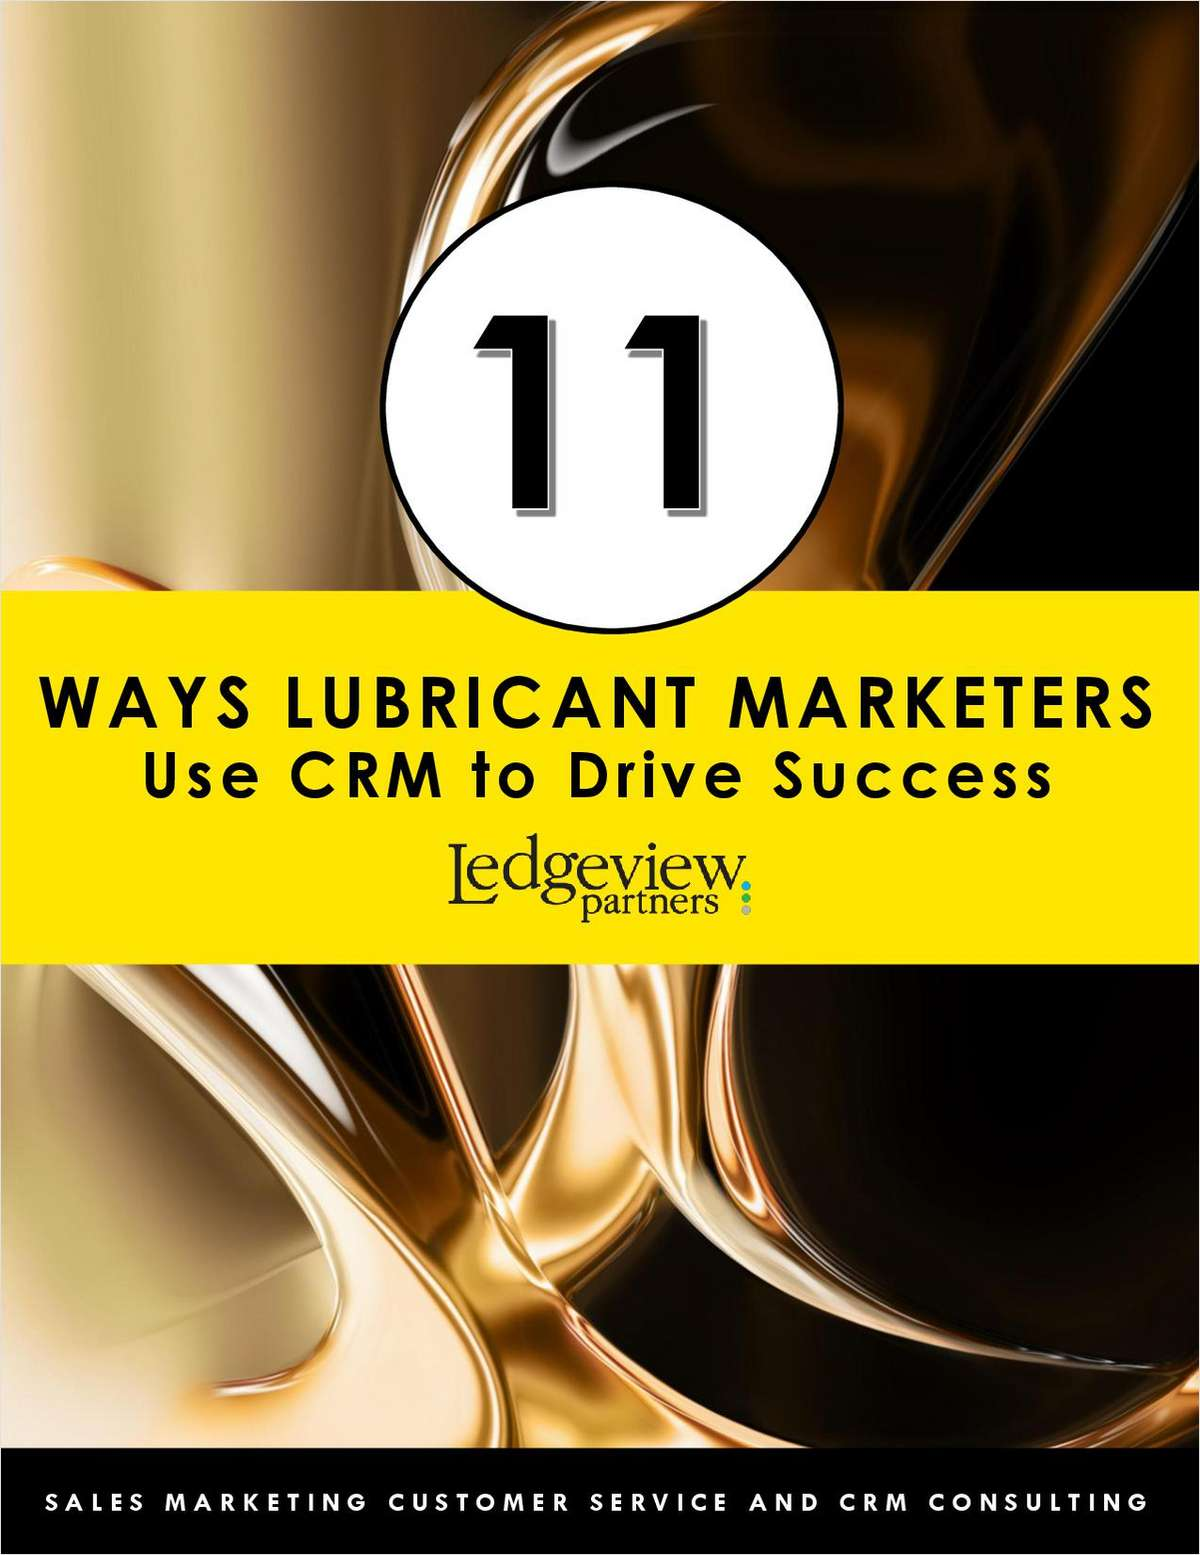 11 Ways Lubricant Marketers Use CRM to Drive Success